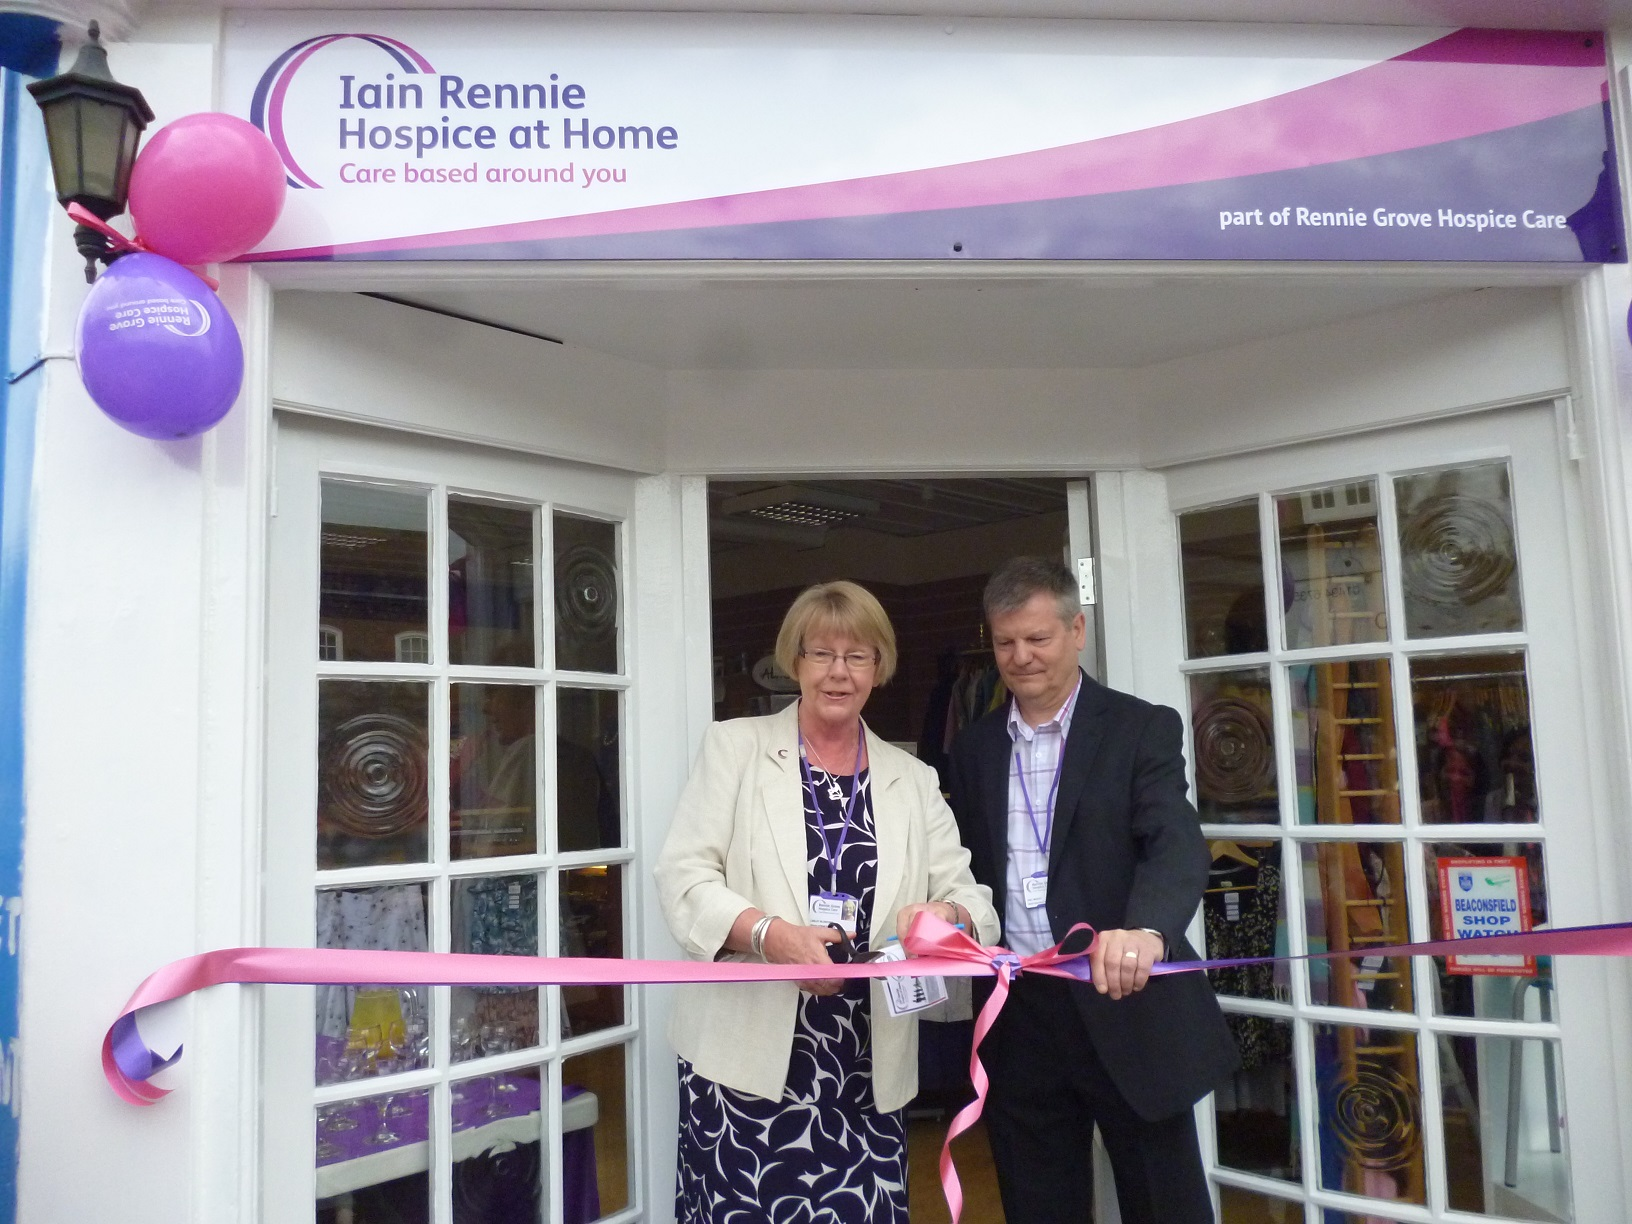 New charity shop is opened in Beaconsfield